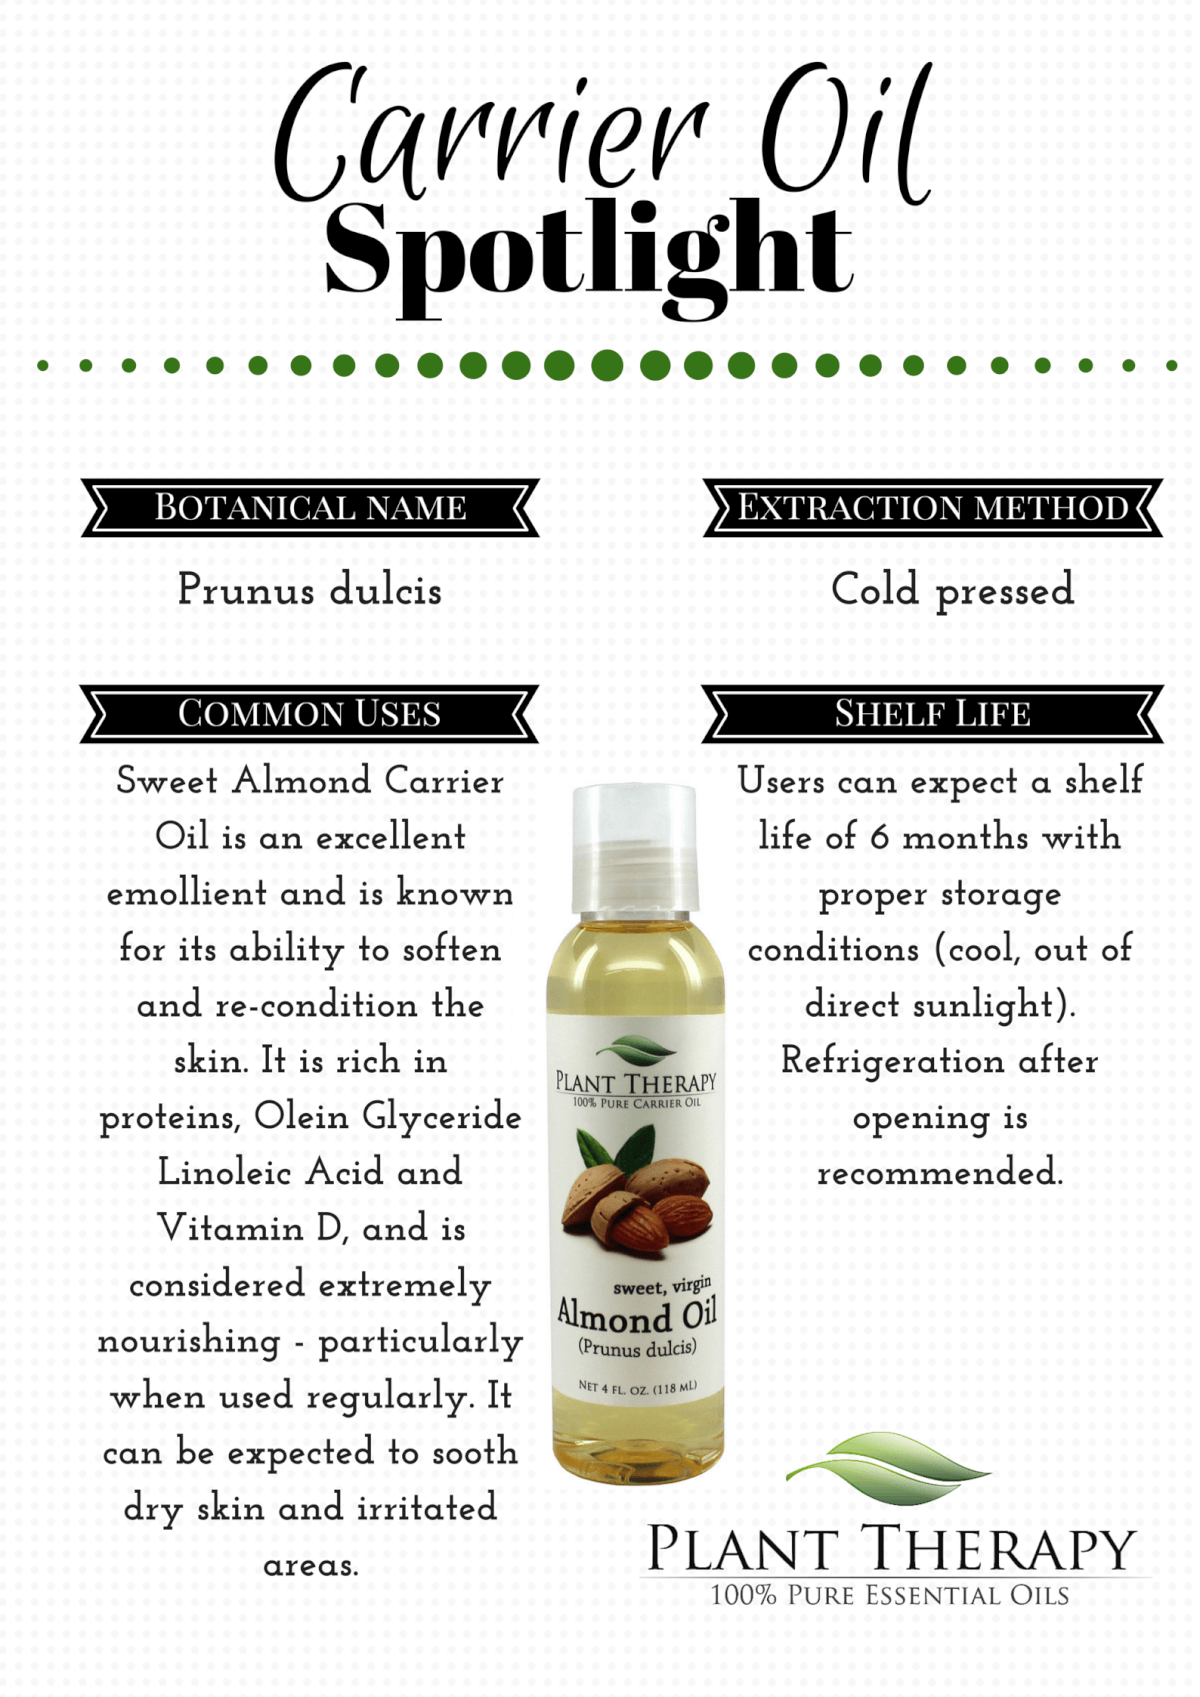 Plant Therapy Almond Carrier Oil Spotlight